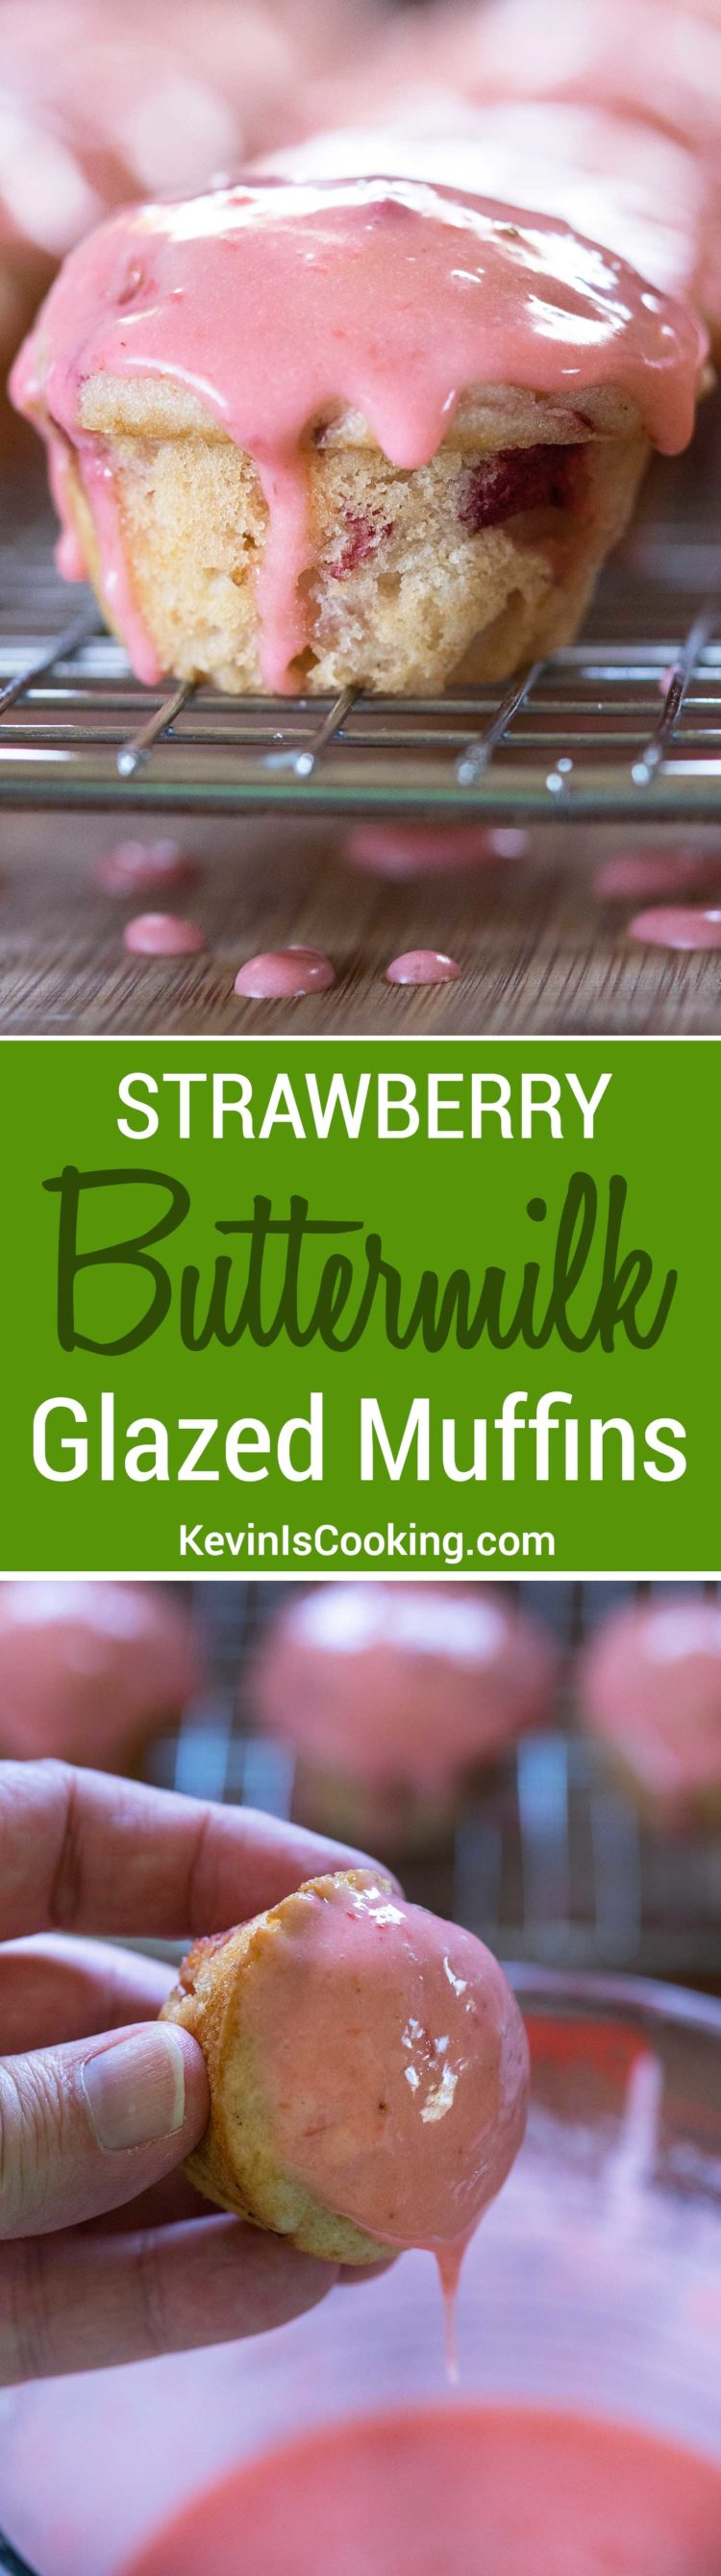 These mini glazed muffins are addictive, but in a good way. Brought these to a party and they were gone in minutes. Next time I'll double the batch!